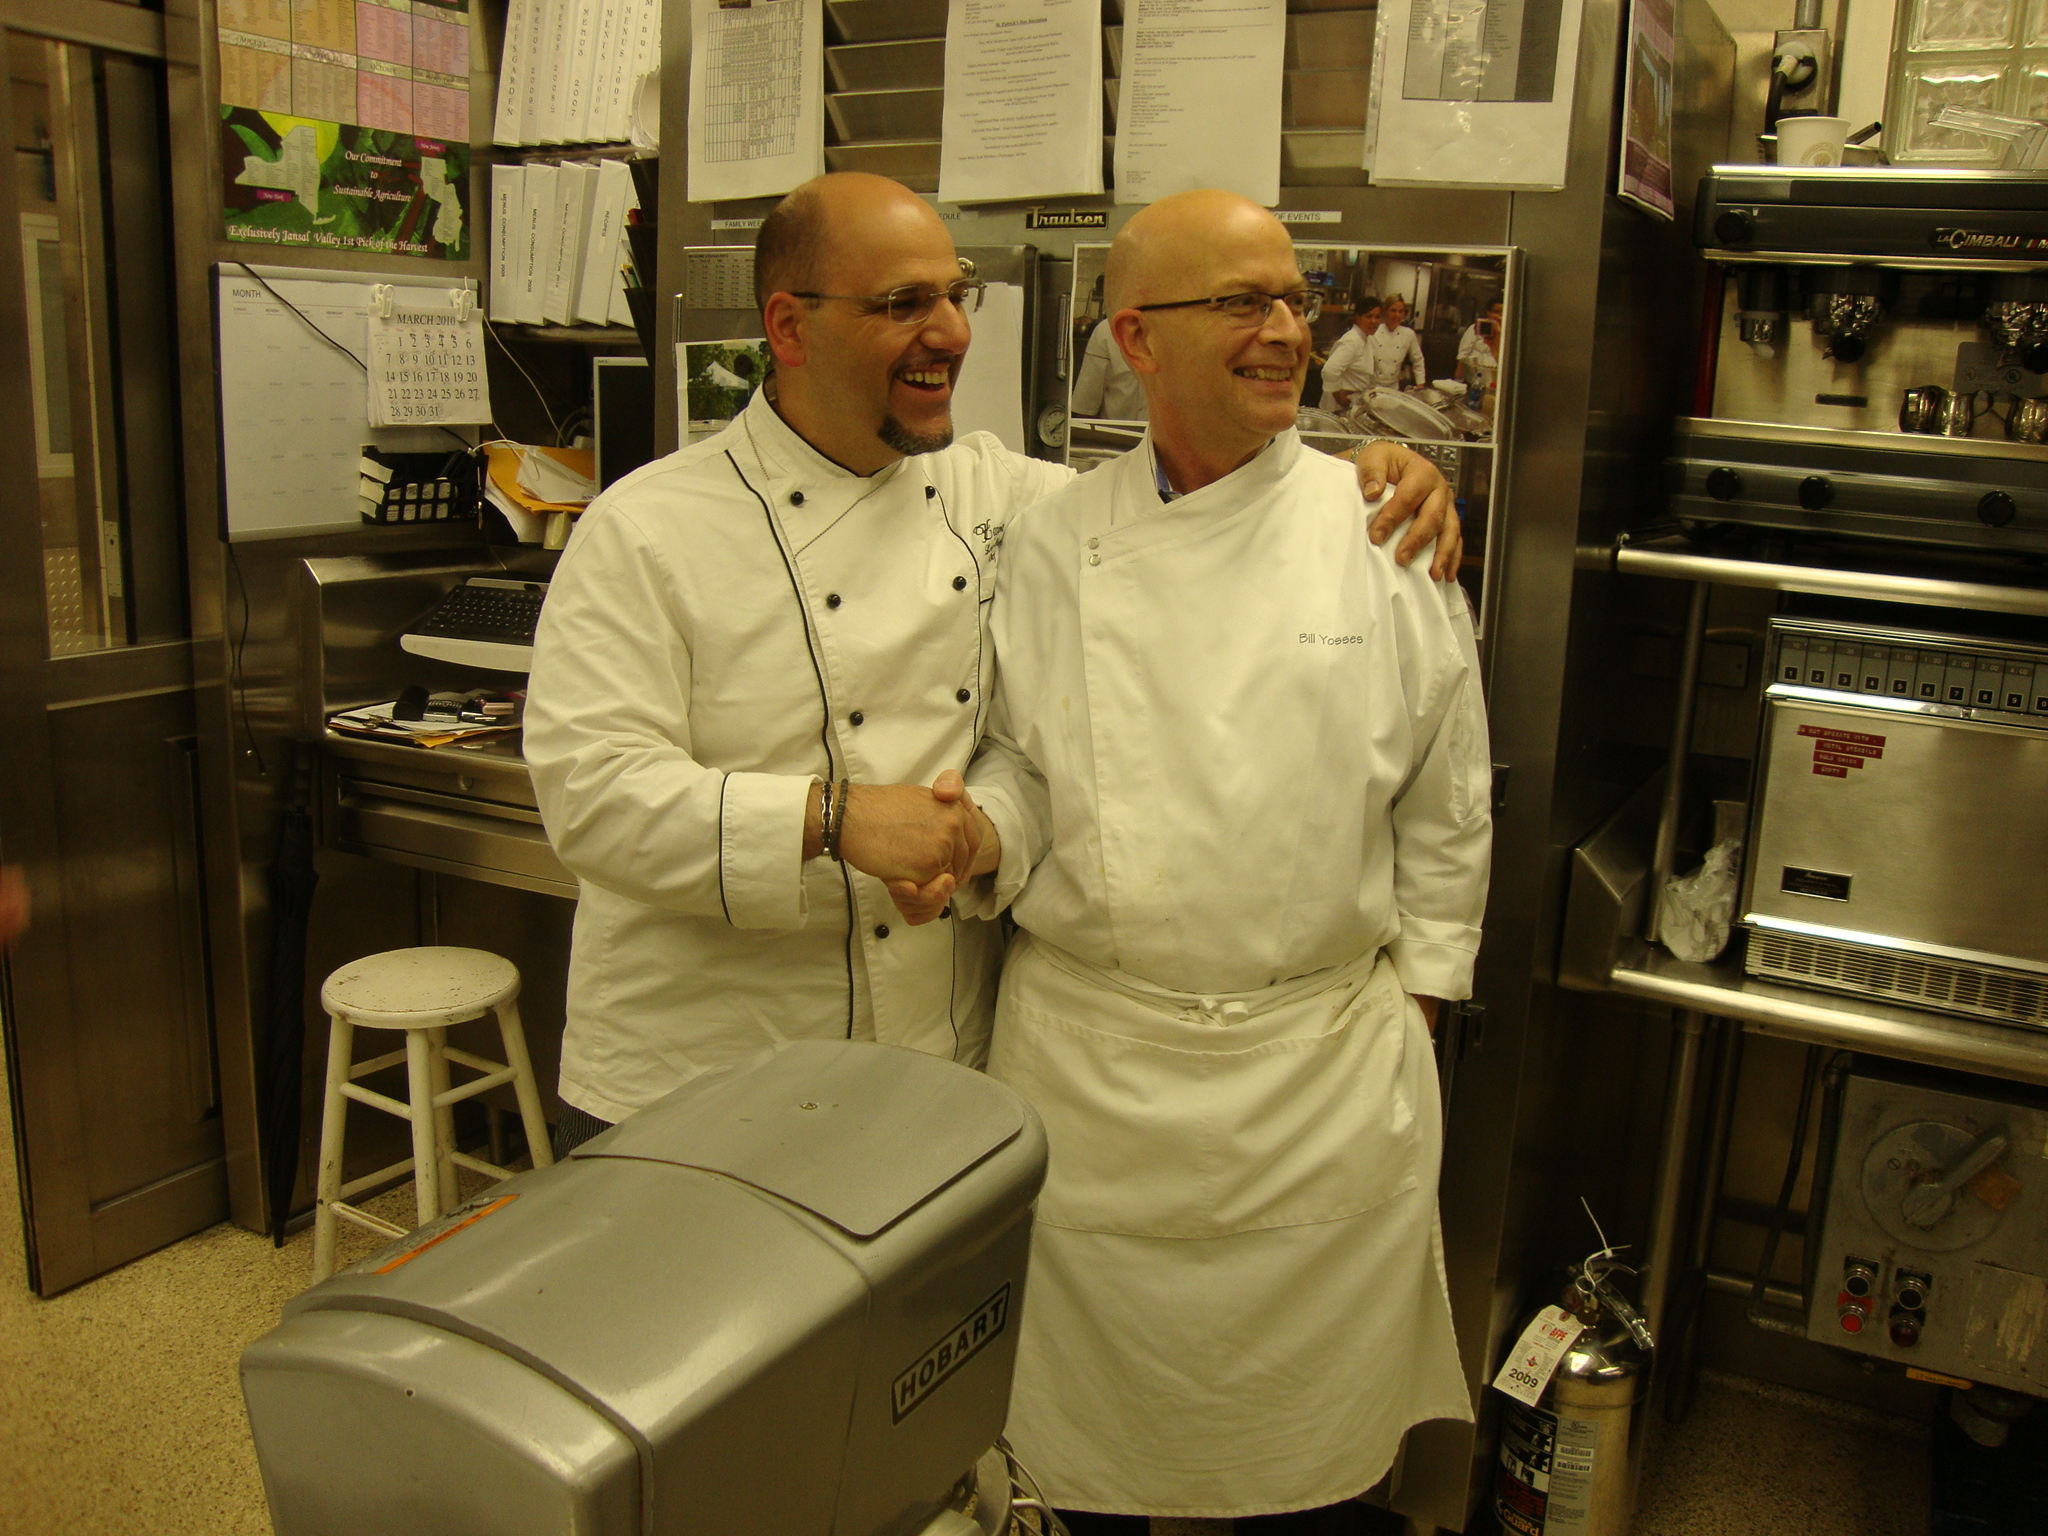 Chef Lorenzo with Bill Yosses